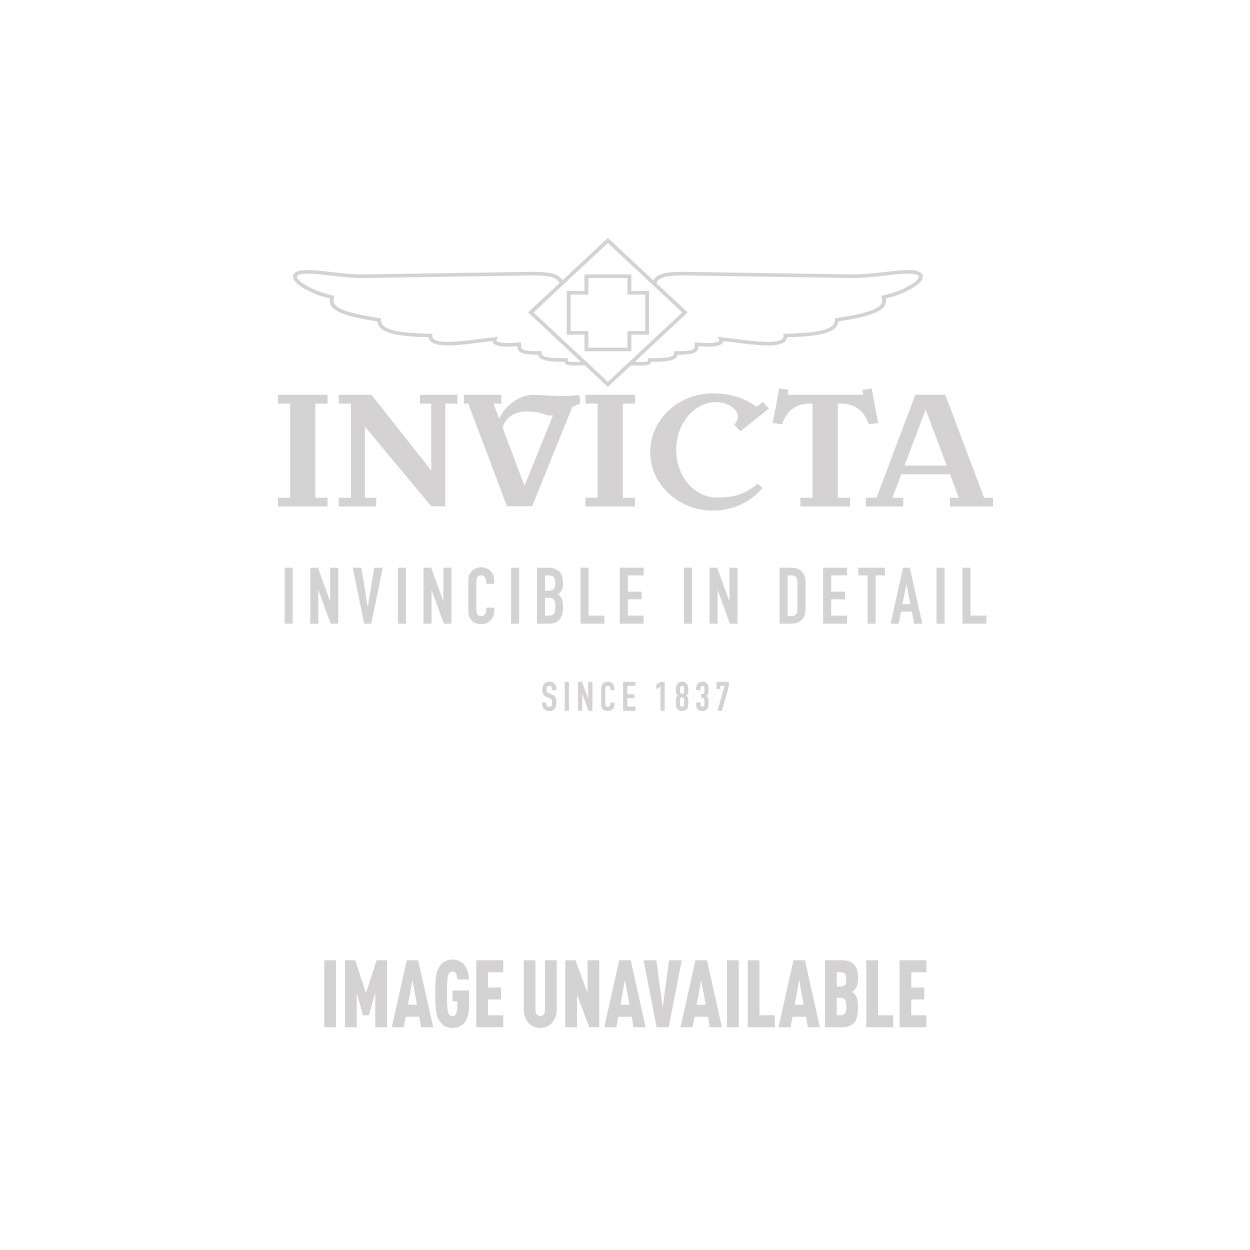 Invicta Russian Diver Mechanical Watch - Black case with Black tone Stainless Steel, Polyurethane band - Model 1091